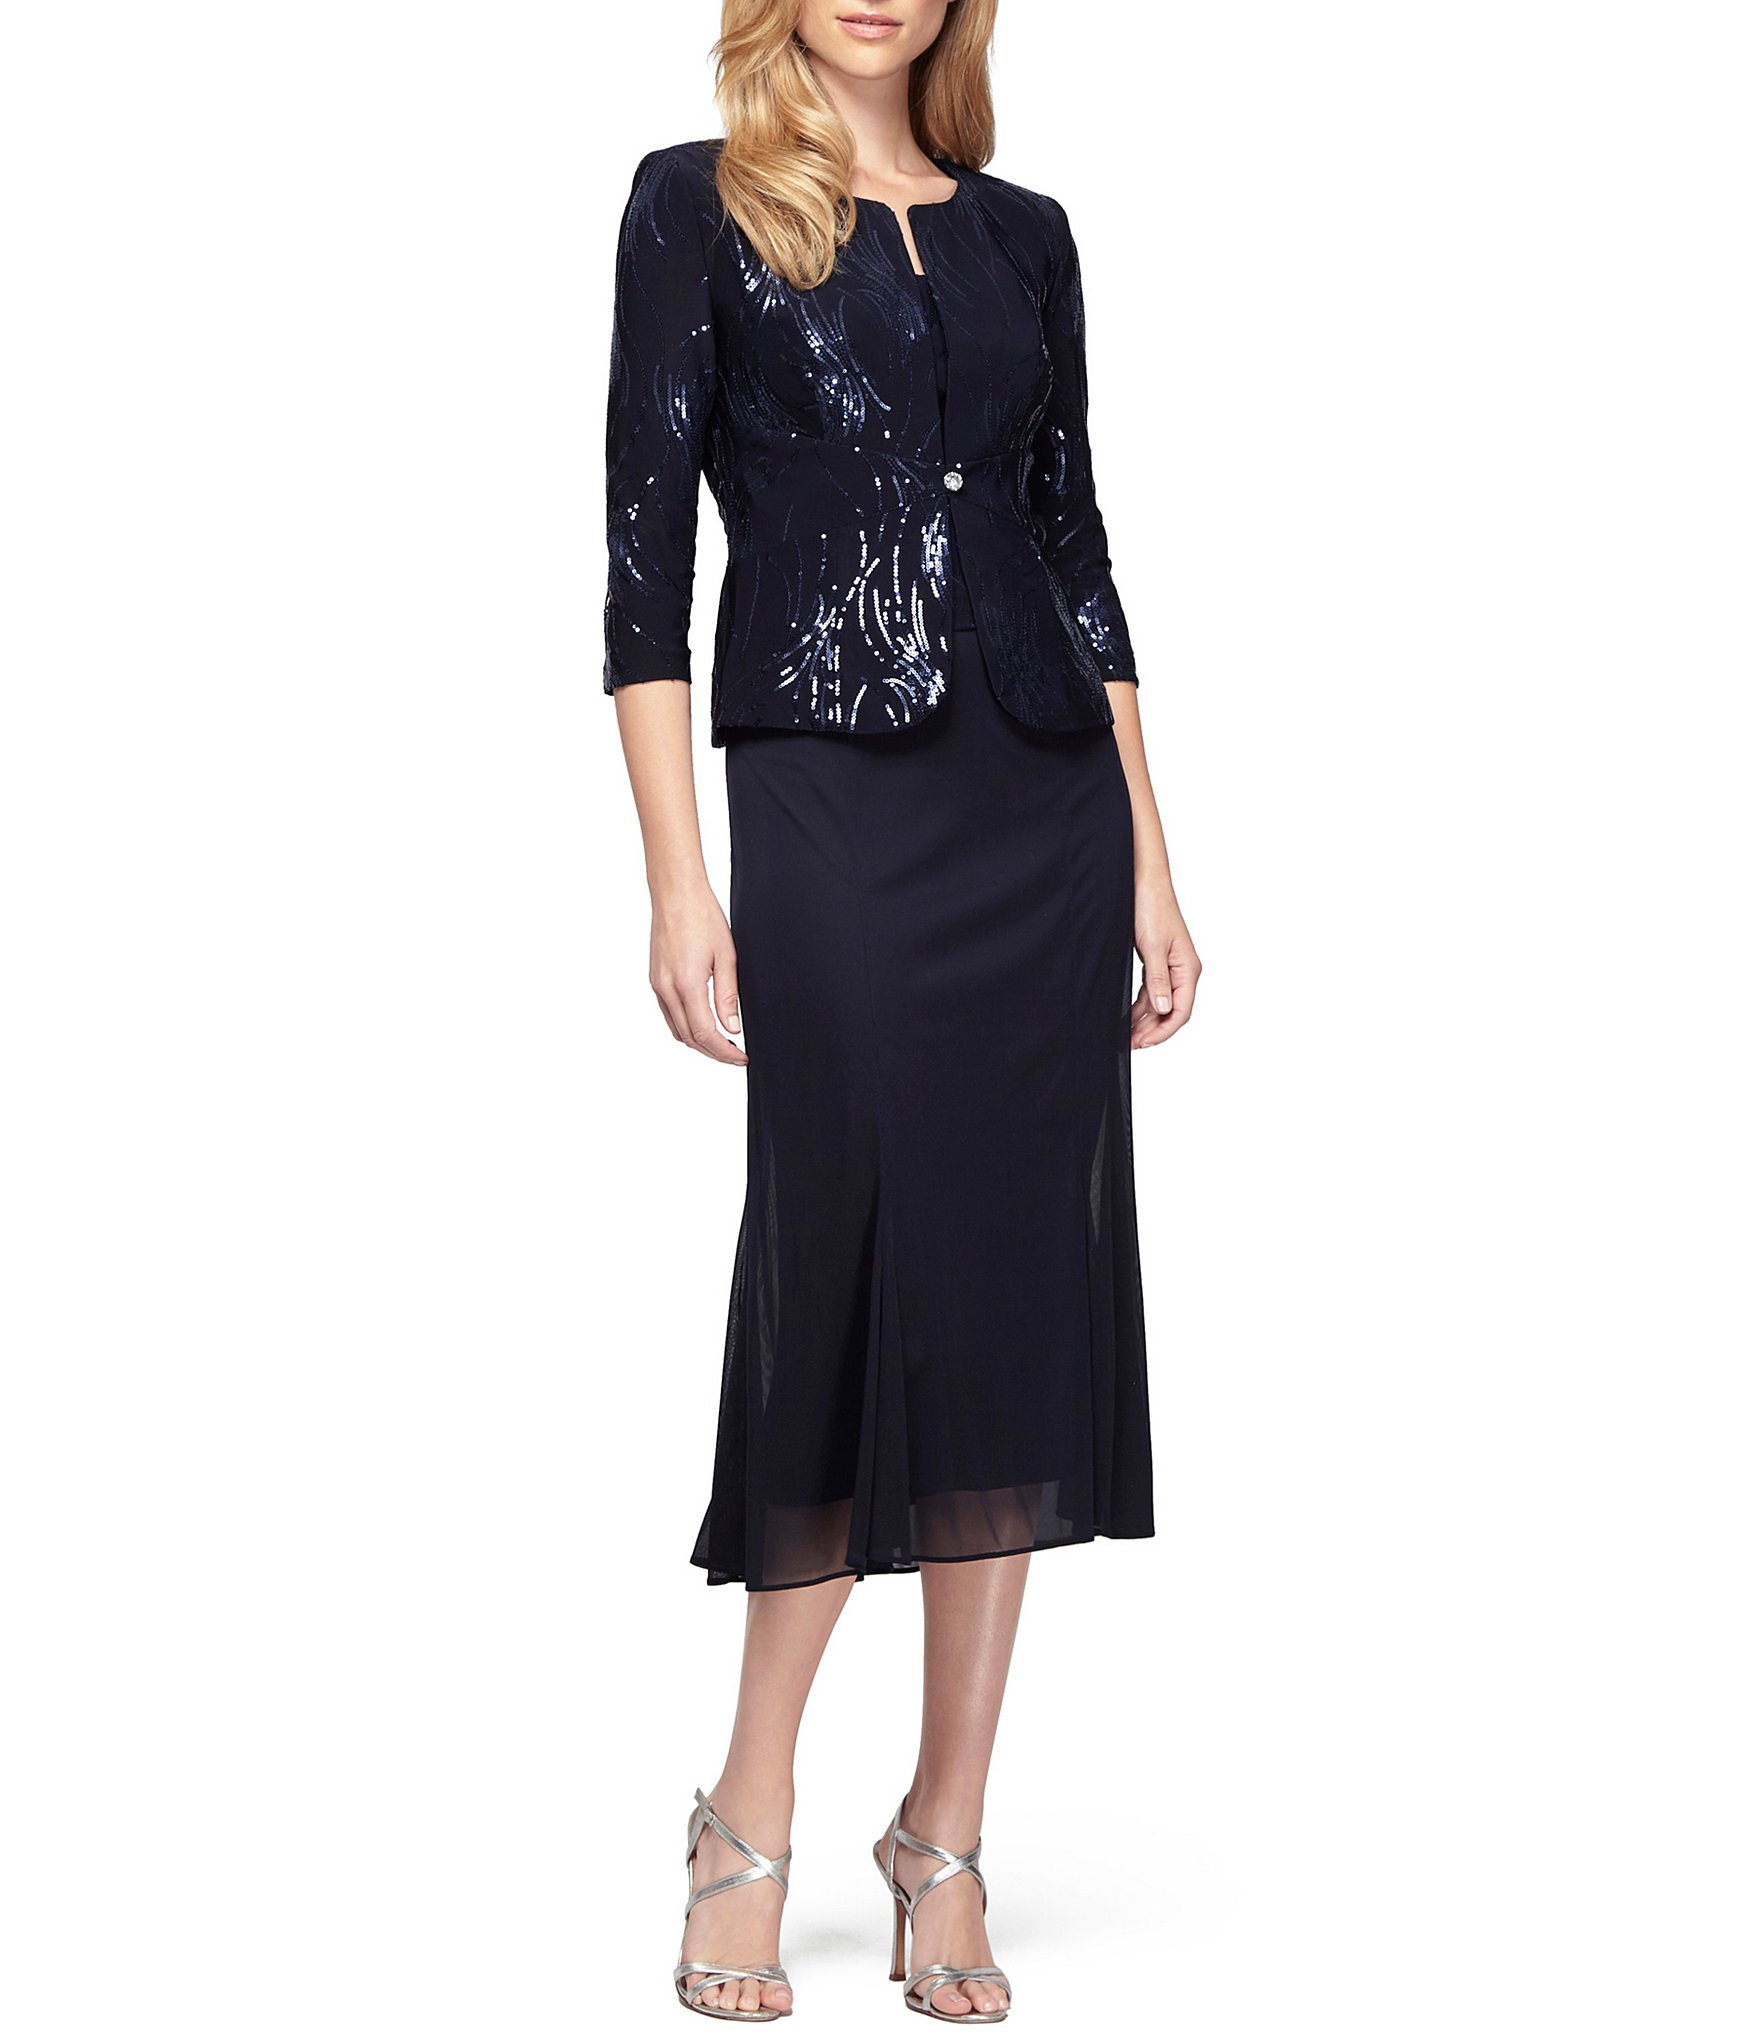 Ladies Gowns: Alex Evenings Sequined 2-Piece Jacket Dress